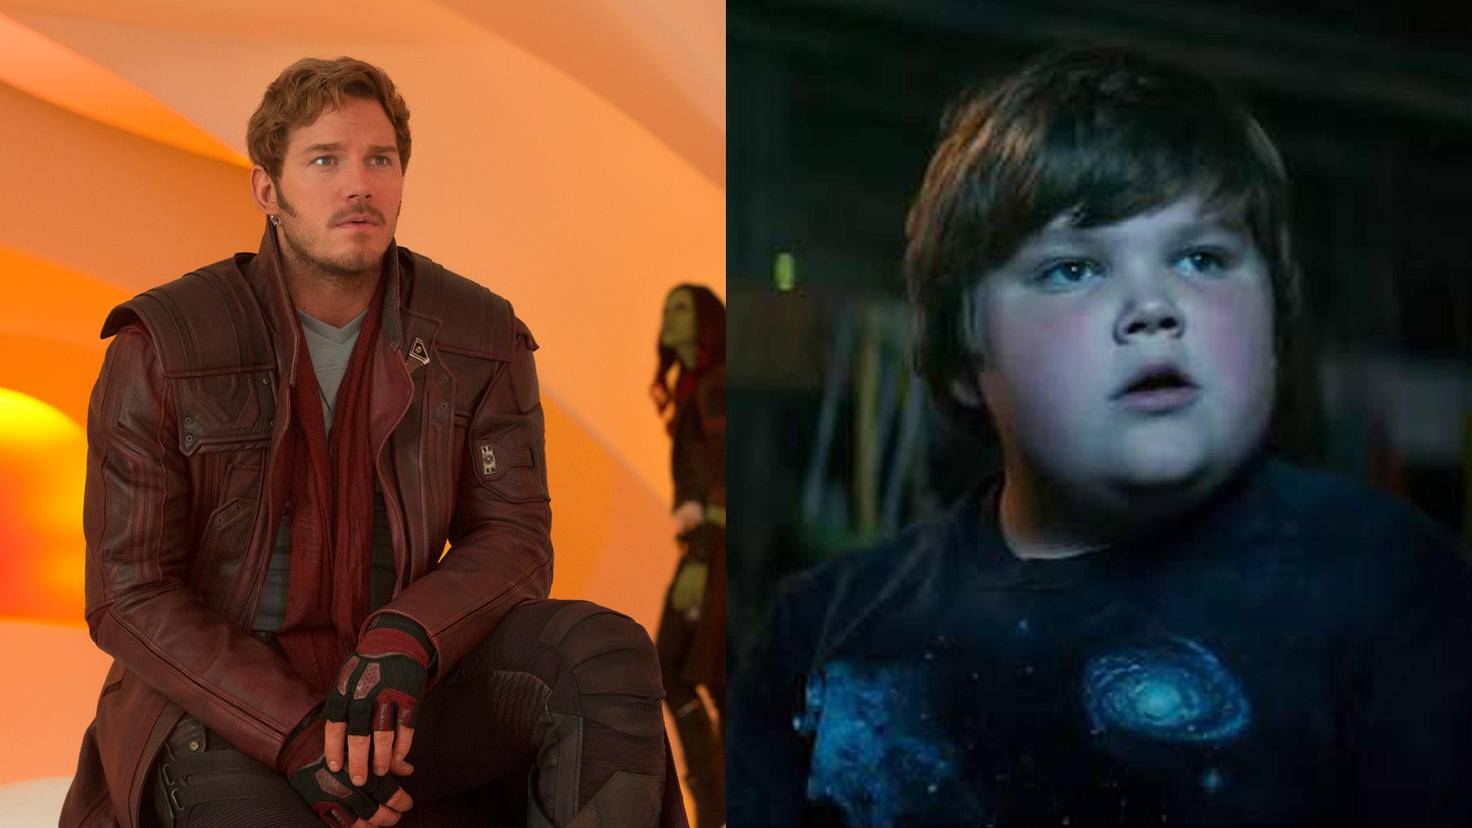 Guardians of the Galaxy 2-Star Lord-Chris Pratt-Marvel Studios-Es-YouTube-Warner bros Pictures-2